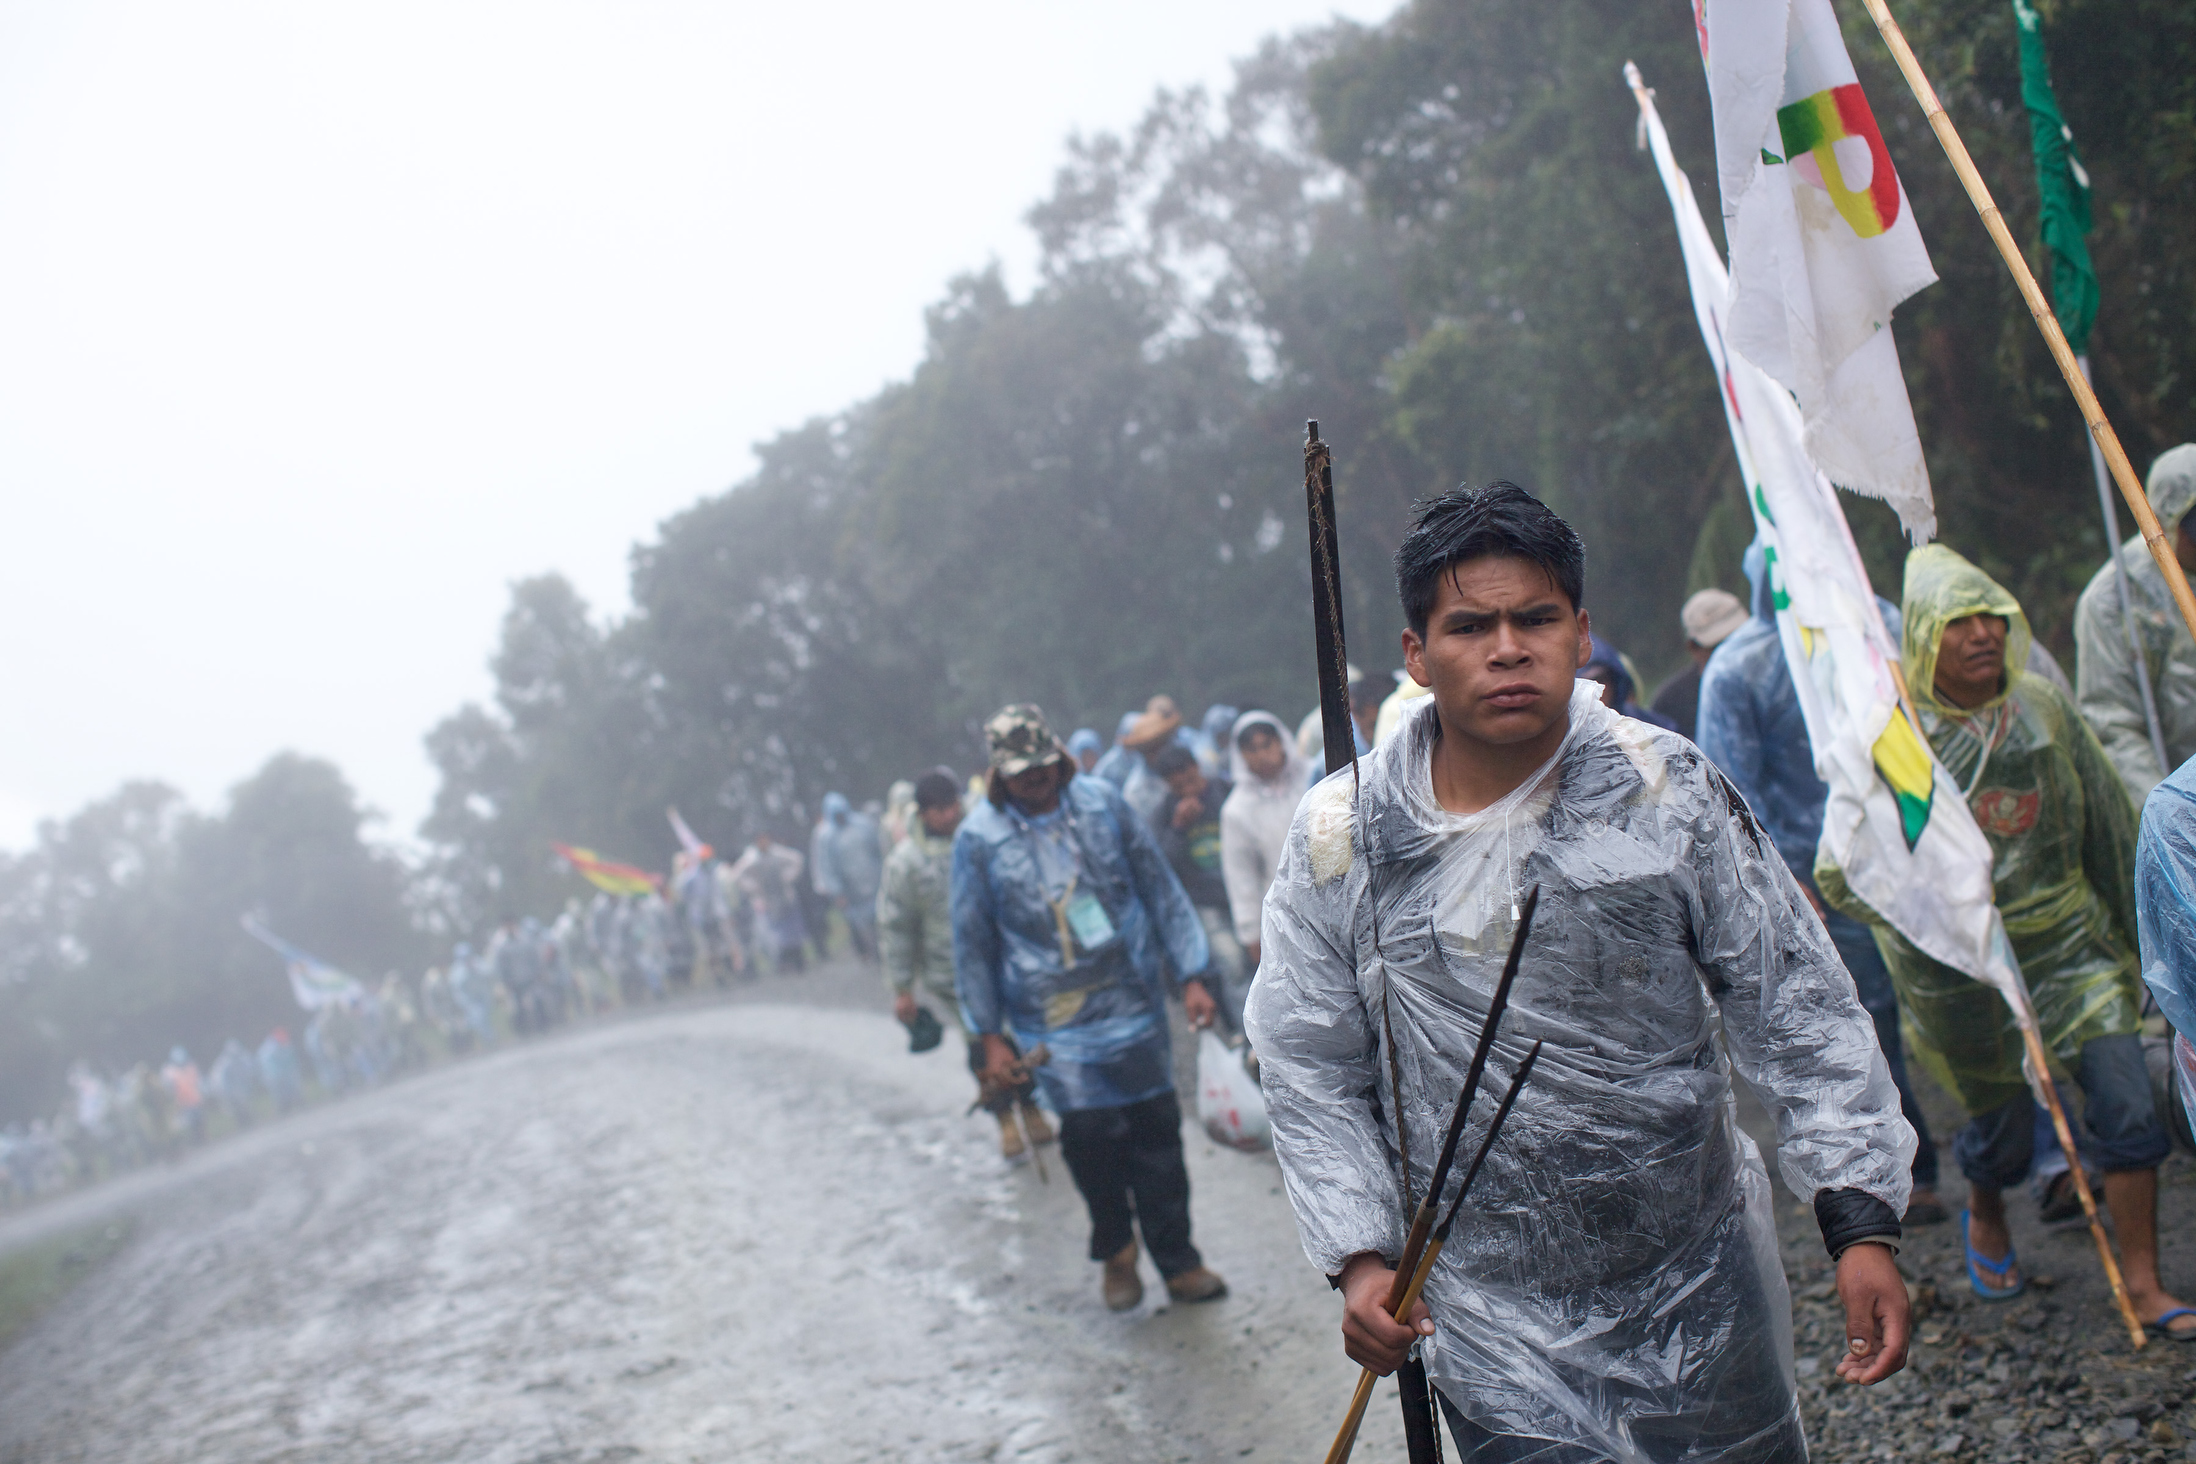 Indigenous groups endured rough weather and camped in the Yungas valley during their protest march earlier this spring from their jungle communities to the capital of Bolivia, La Paz. But the struggle initially appea...   Credit: NOAH FRIEDMAN-RUDOVSKY